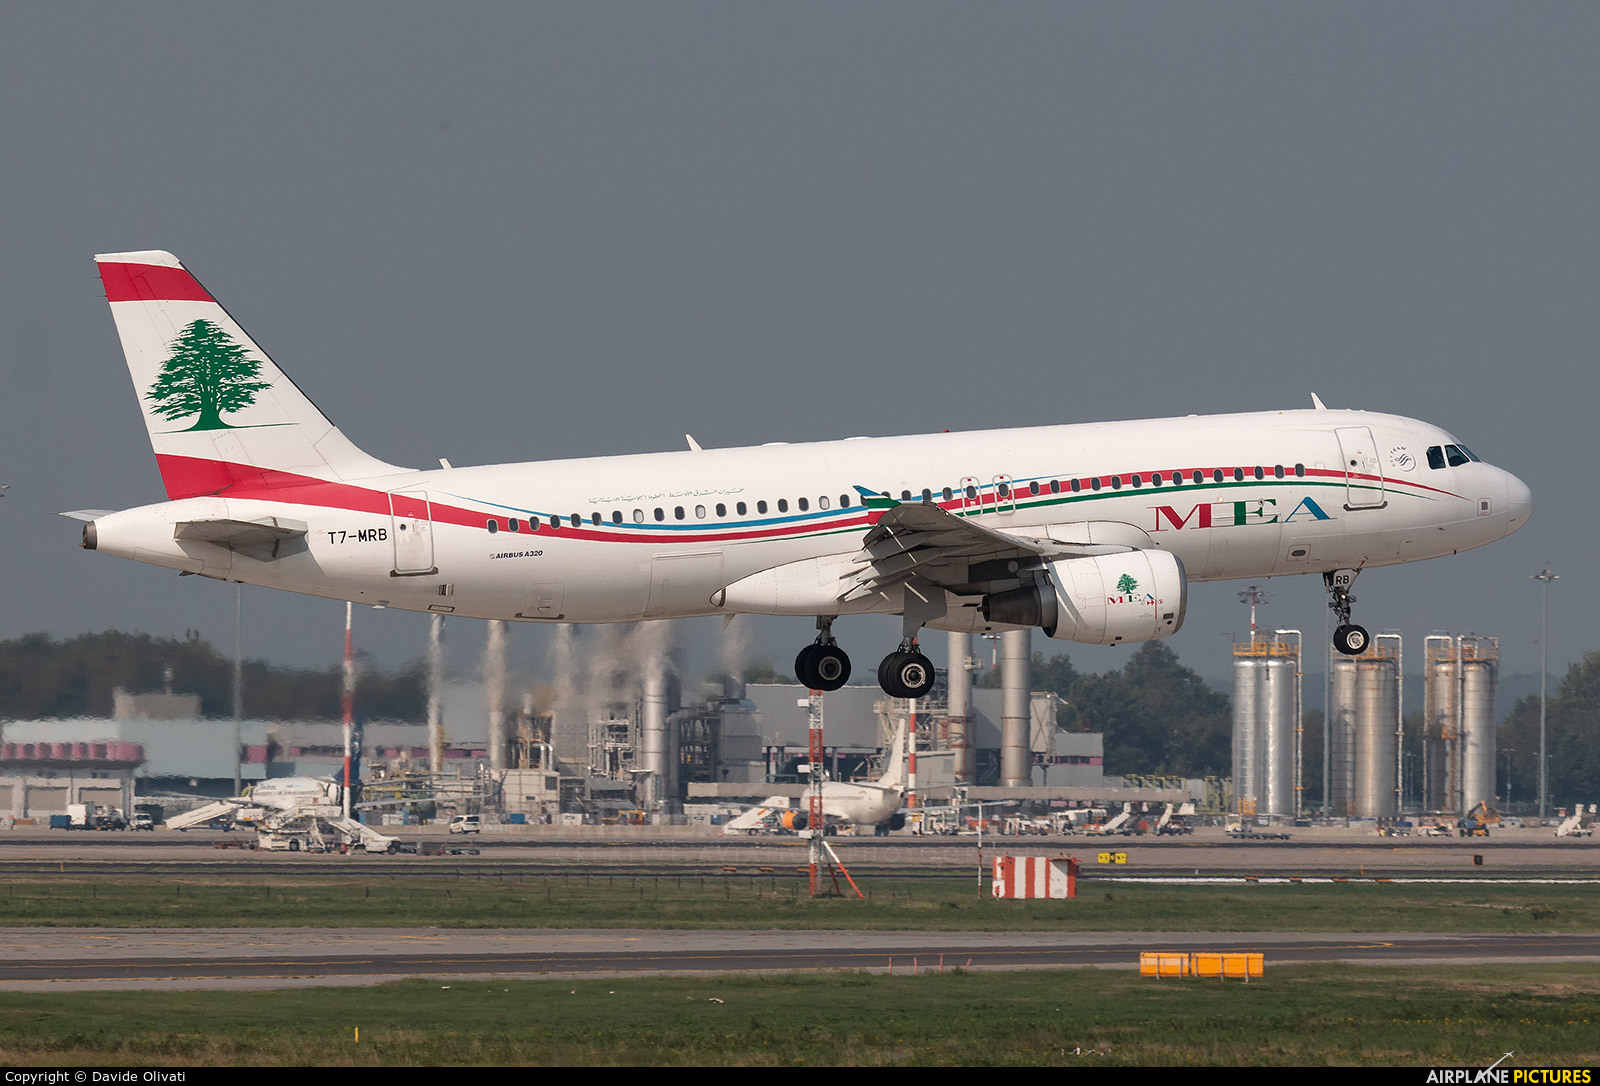 MEA - Middle East Airlines T7-MRB aircraft at Milan - Malpensa